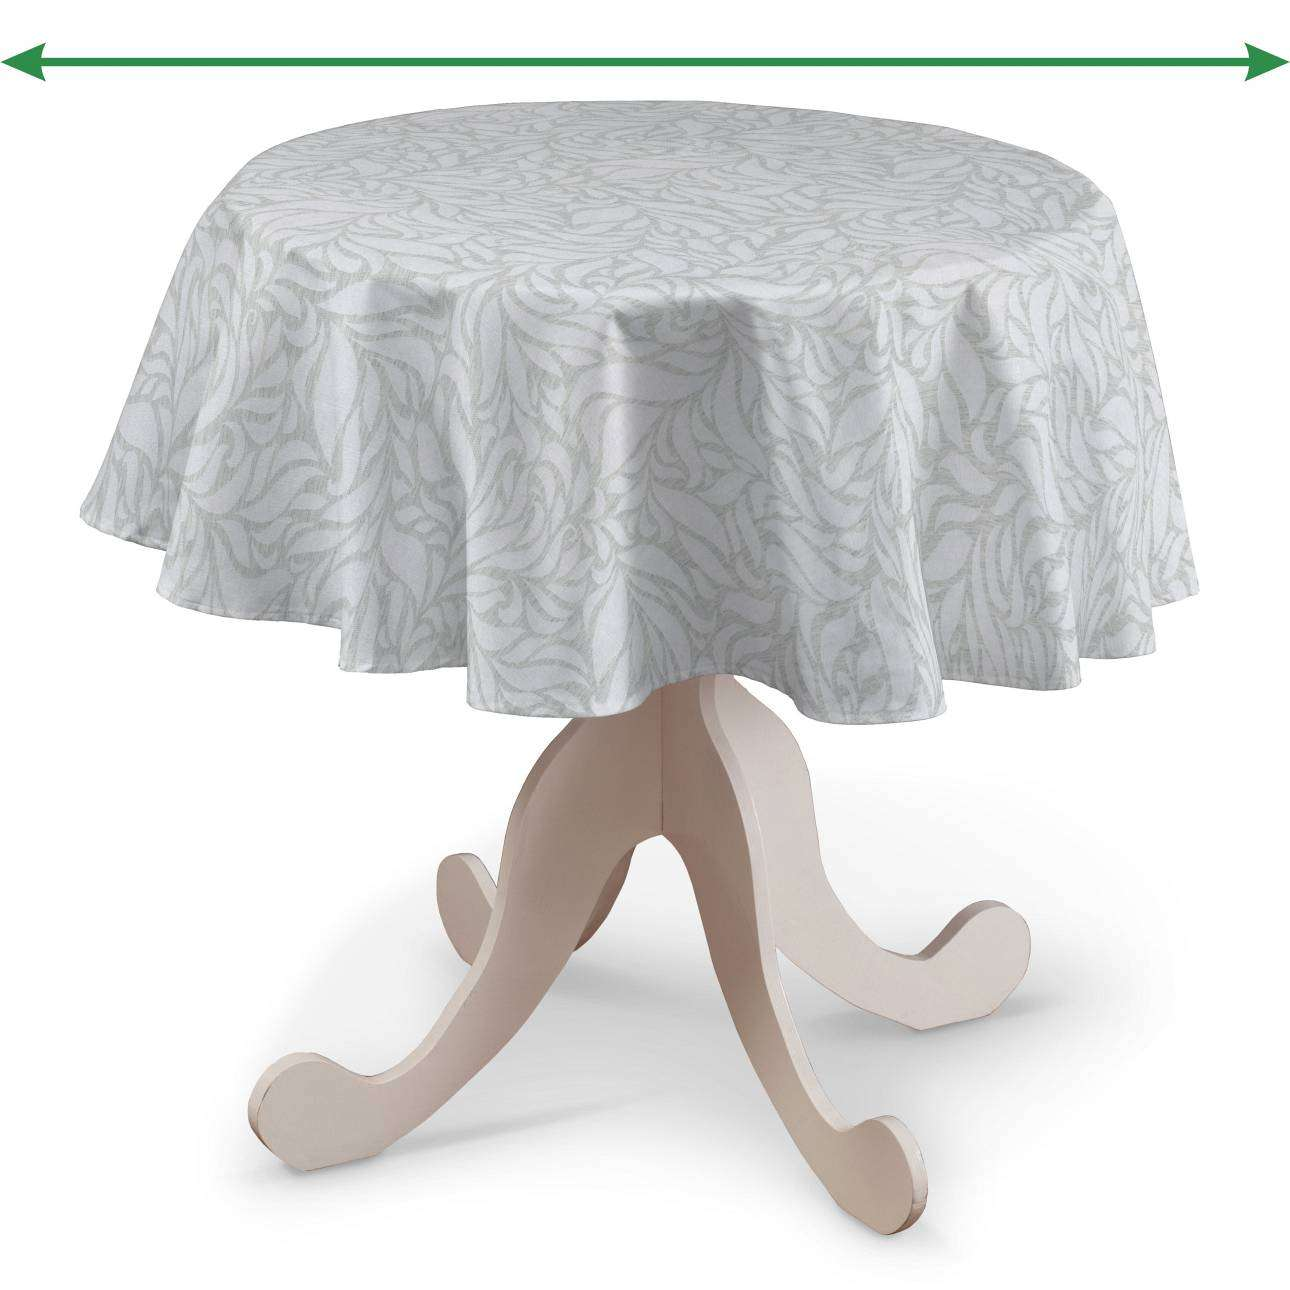 Round tablecloth in collection Venice, fabric: 140-50